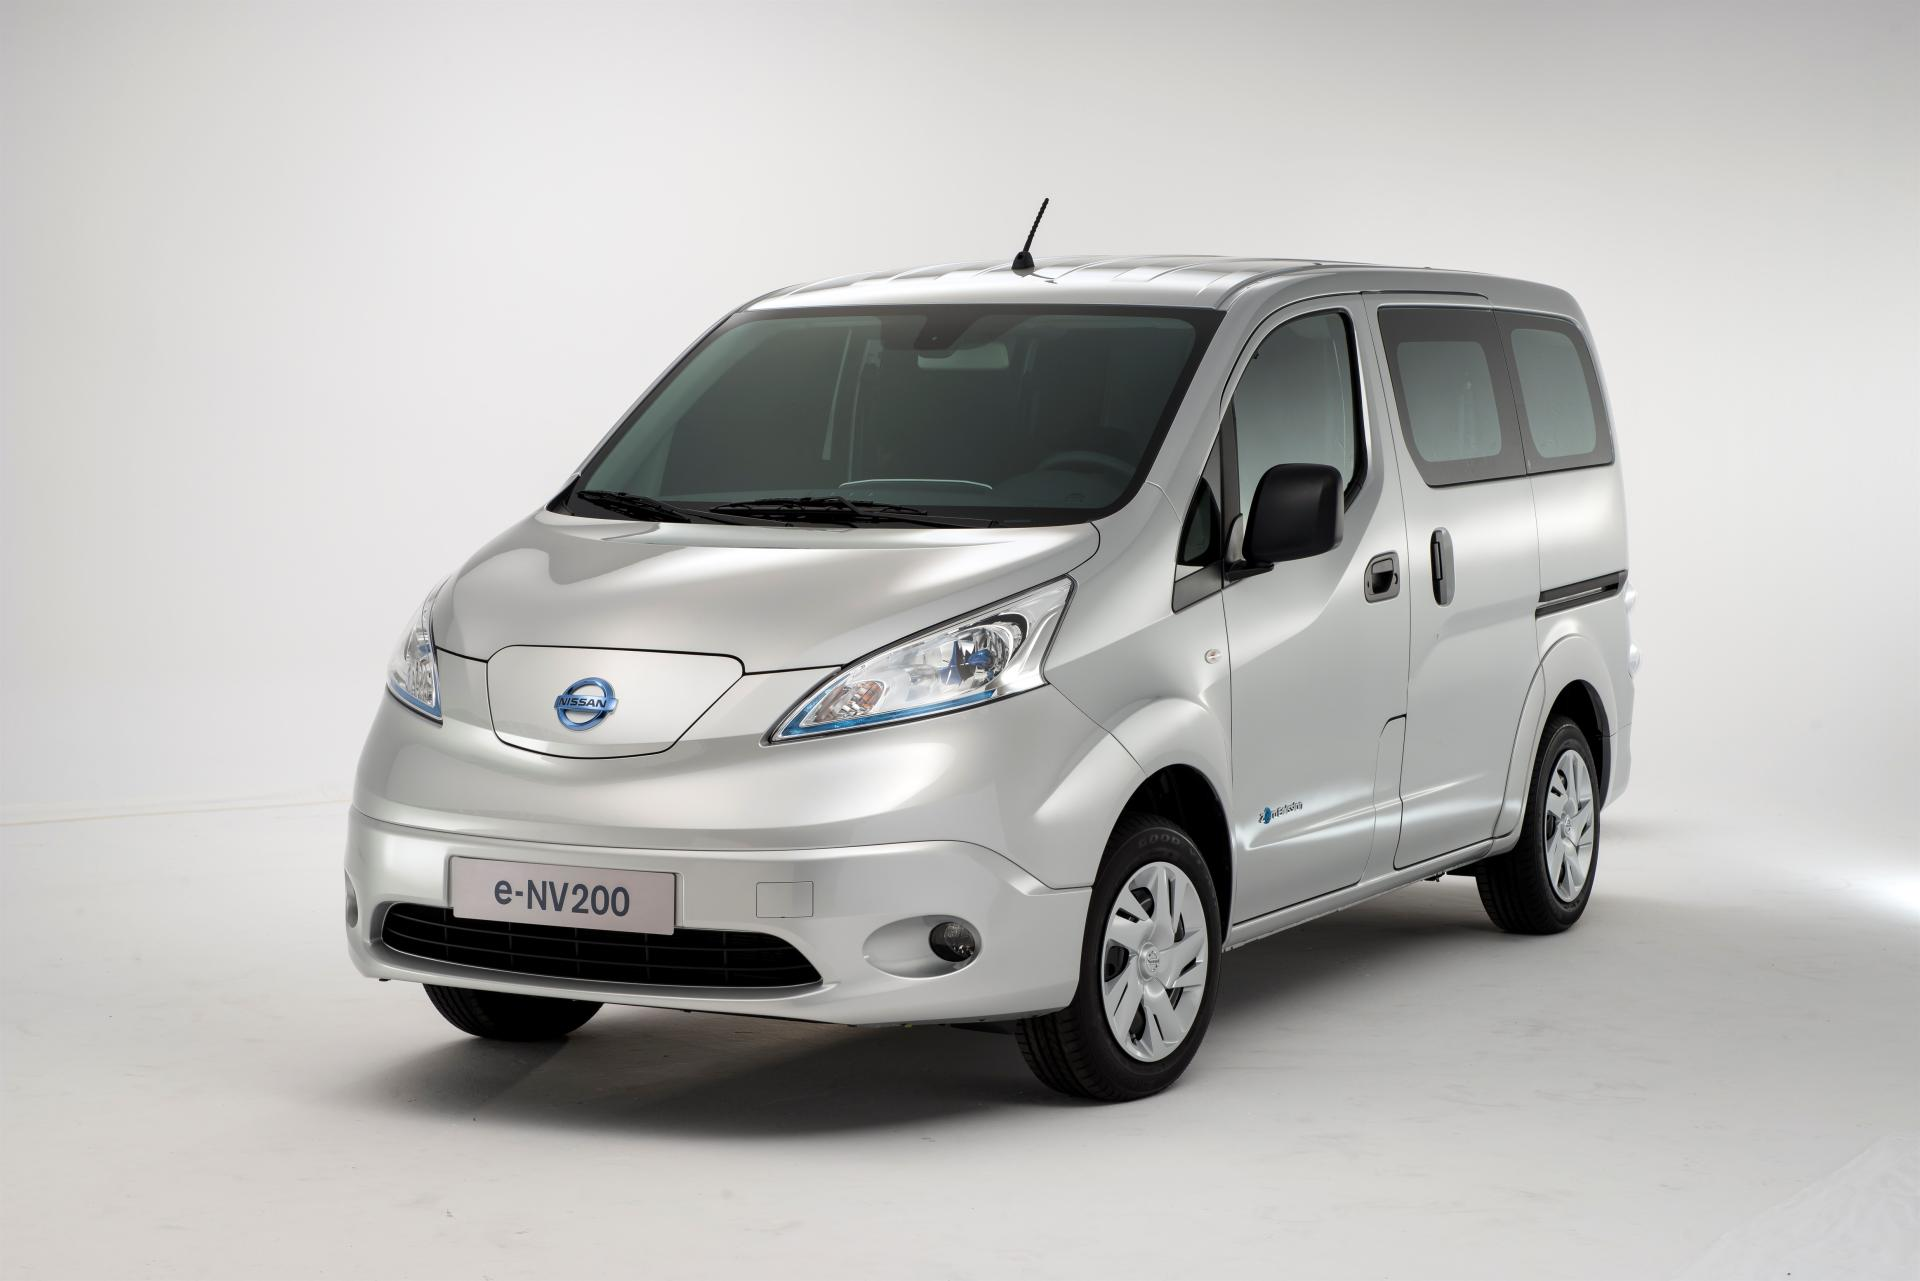 2015 nissan e nv200 technical specifications and data engine dimensions and mechanical details. Black Bedroom Furniture Sets. Home Design Ideas